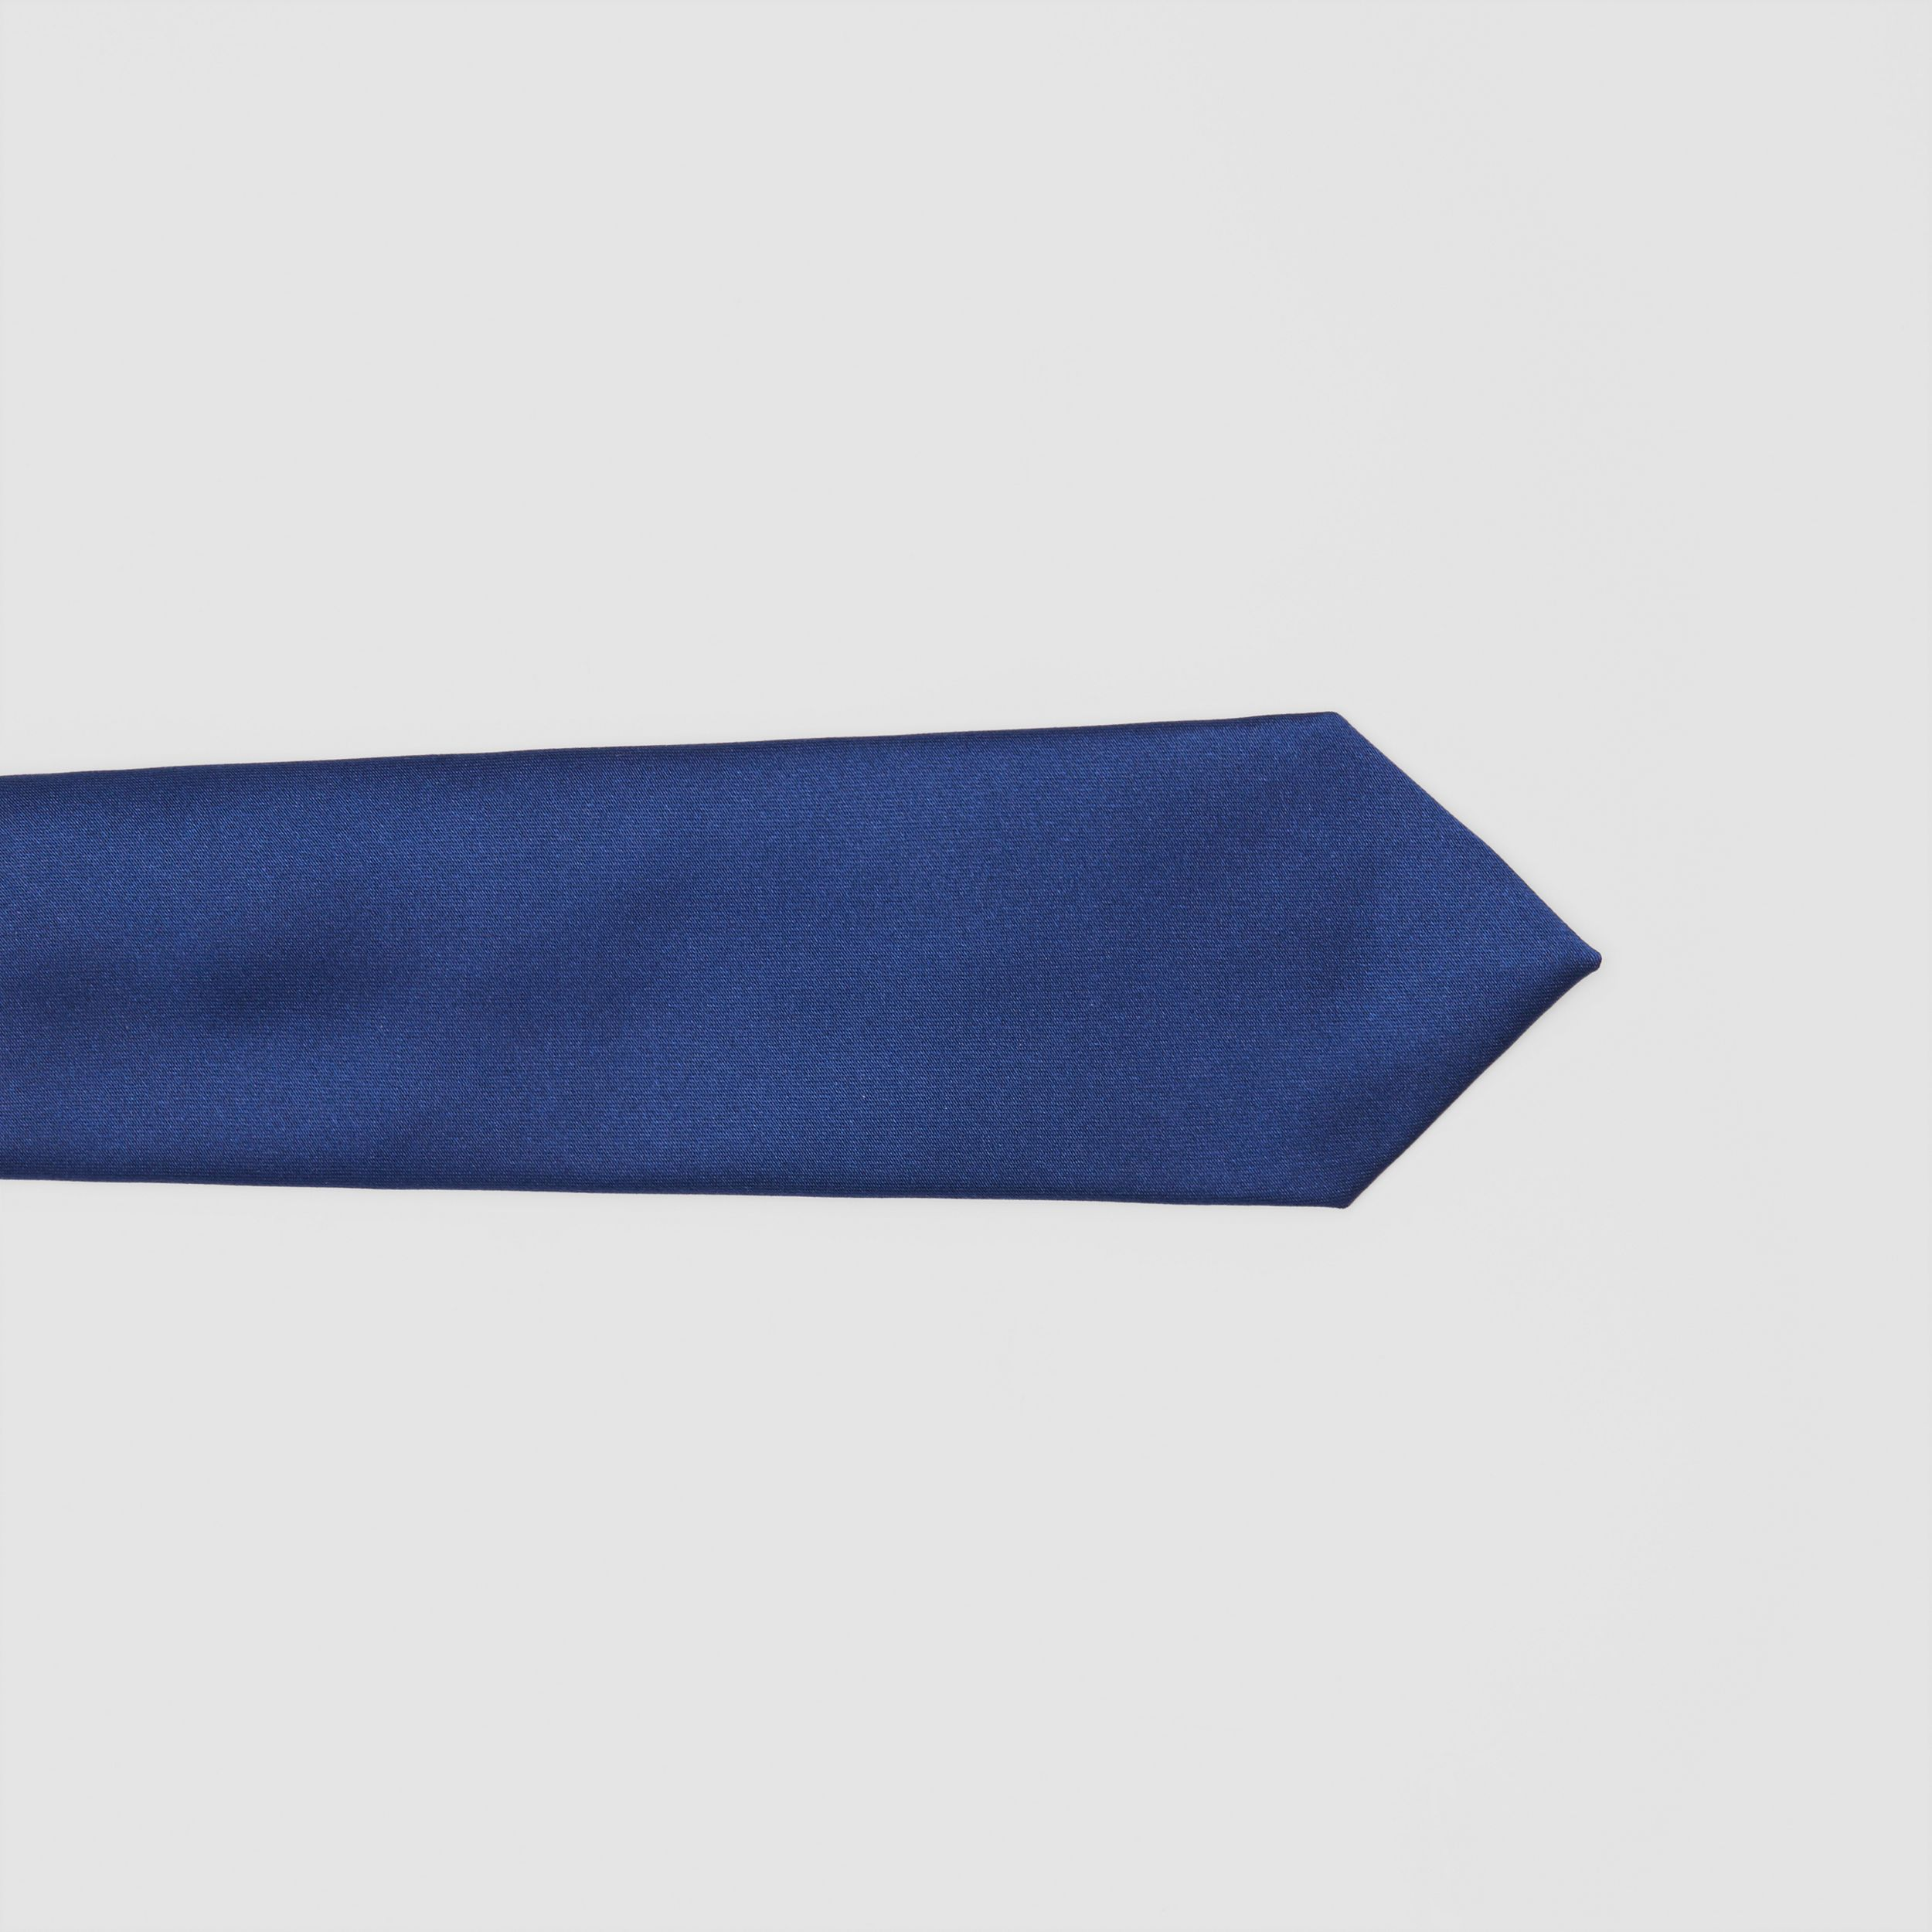 Classic Cut Logo Appliqué Silk Satin Tie in Sapphire Blue - Men | Burberry Hong Kong S.A.R - 2